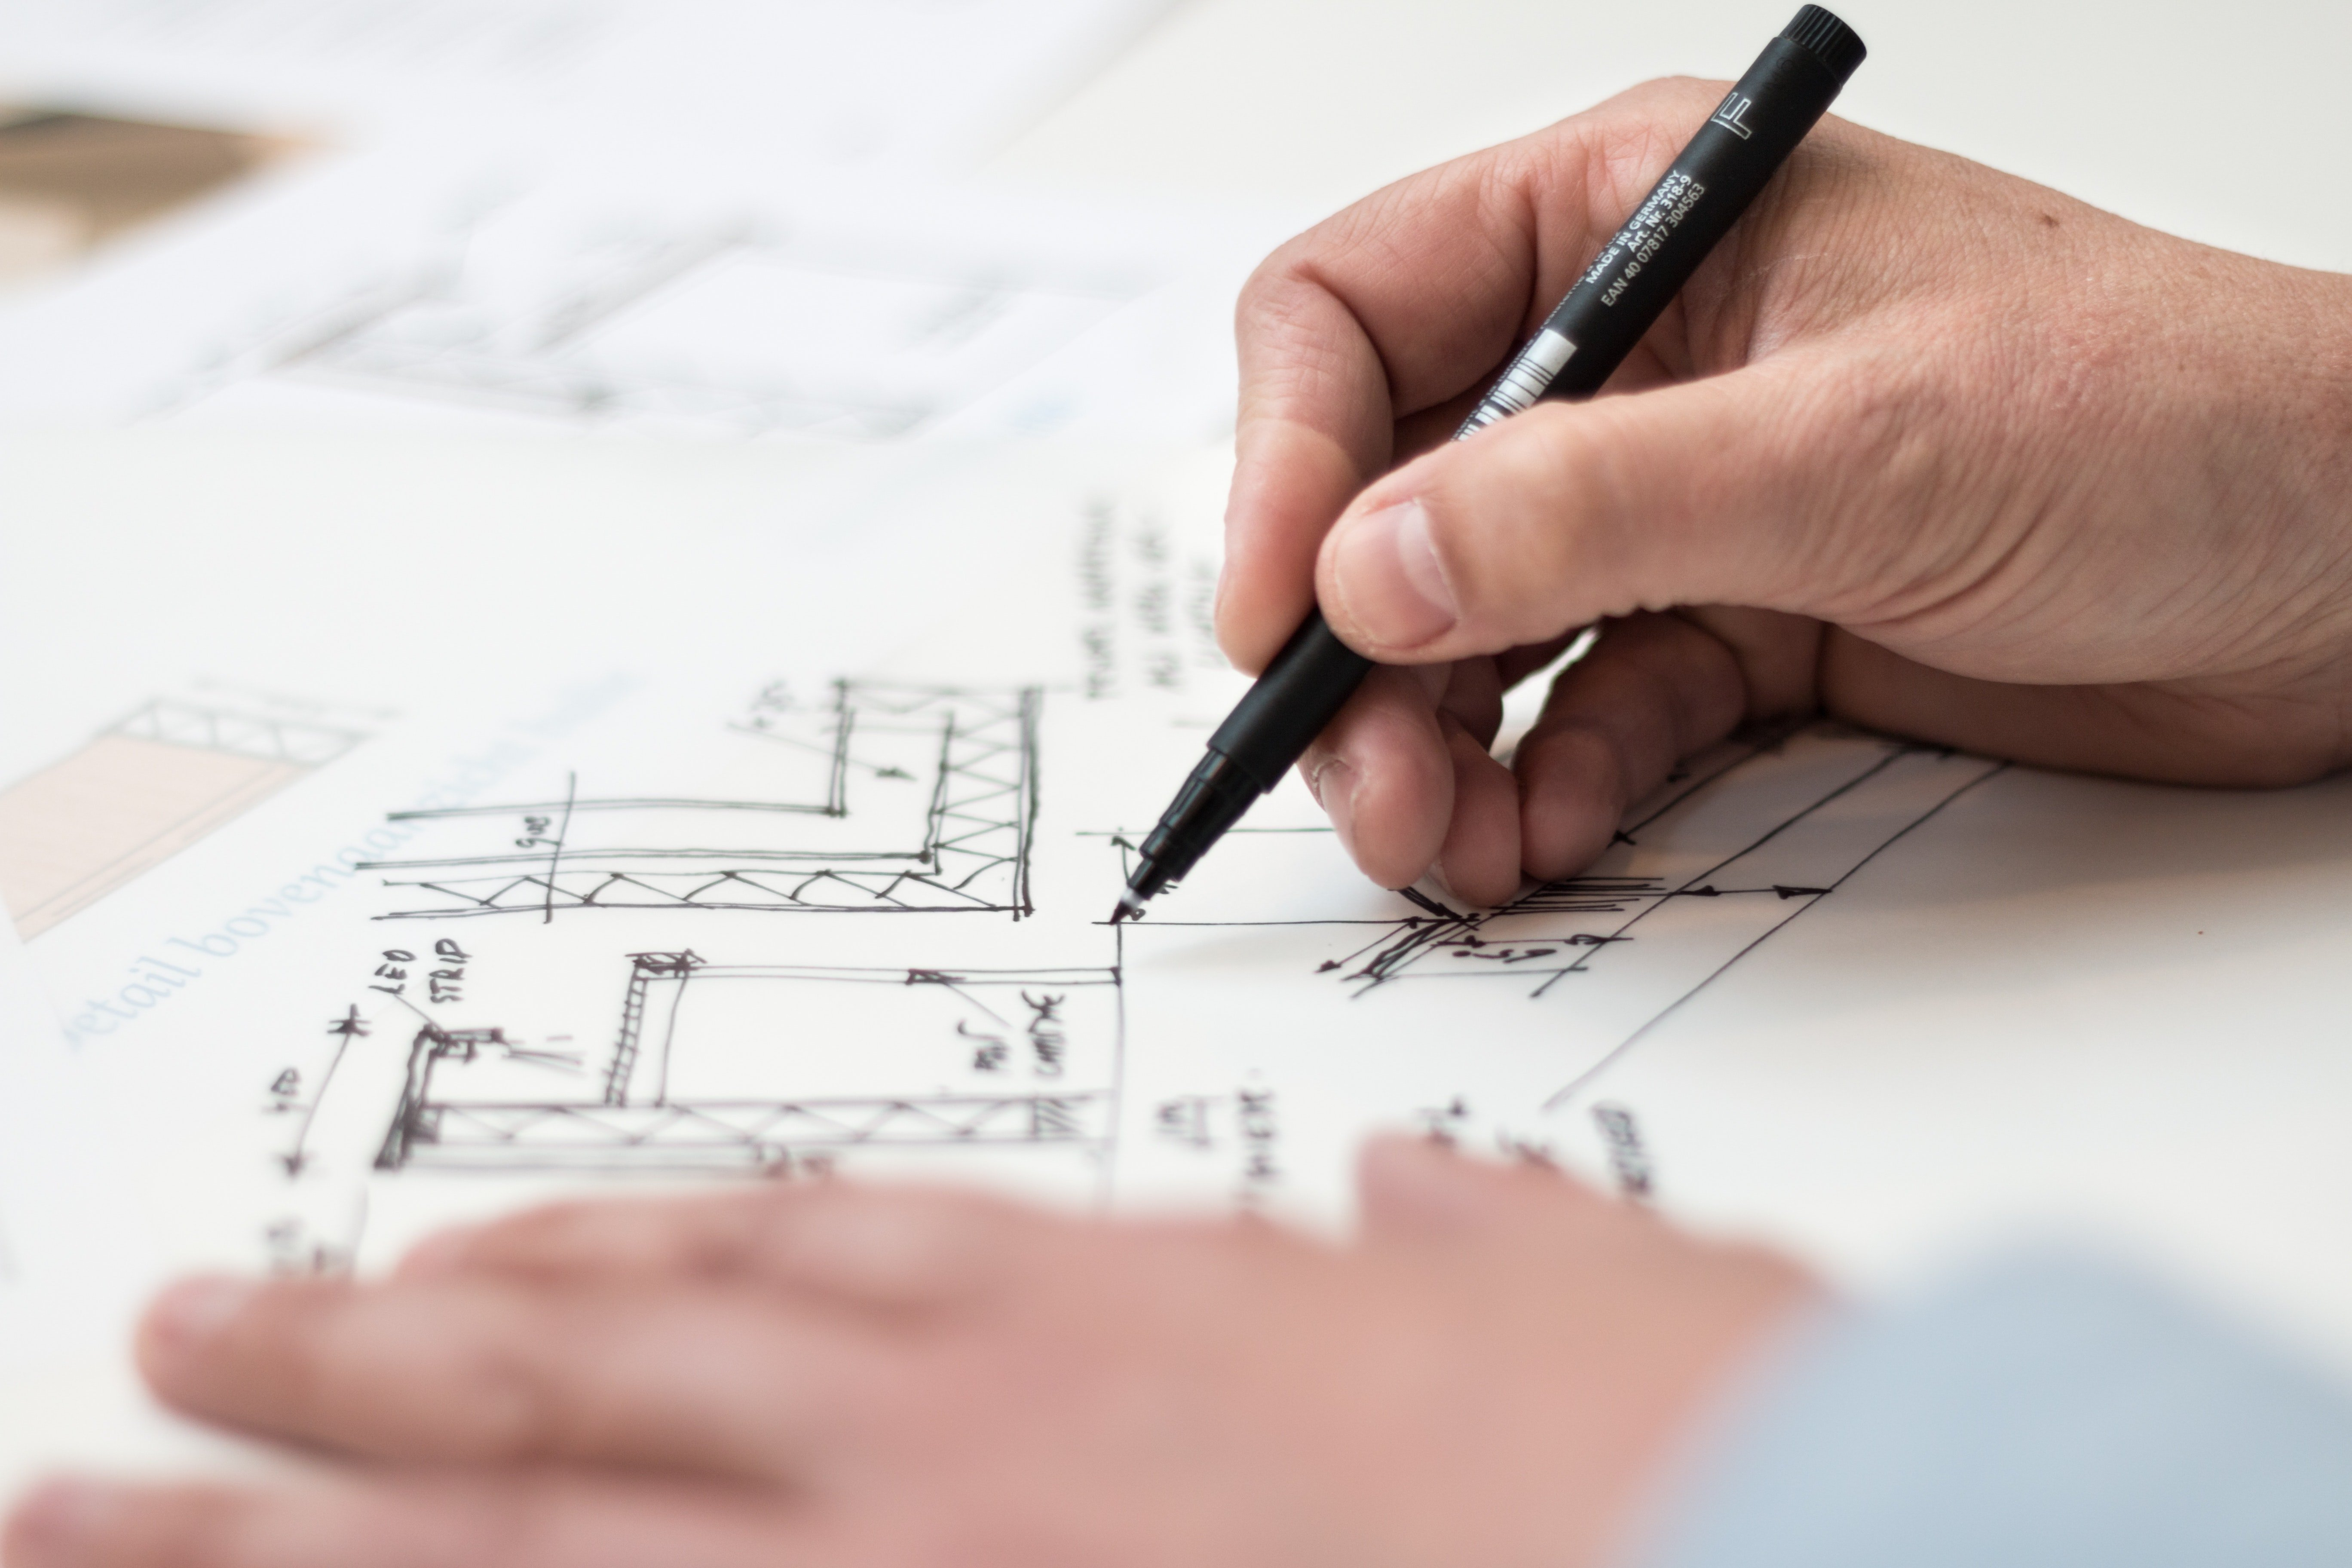 Pictured - An individual with a black pen designing a structure   Source: Pexels